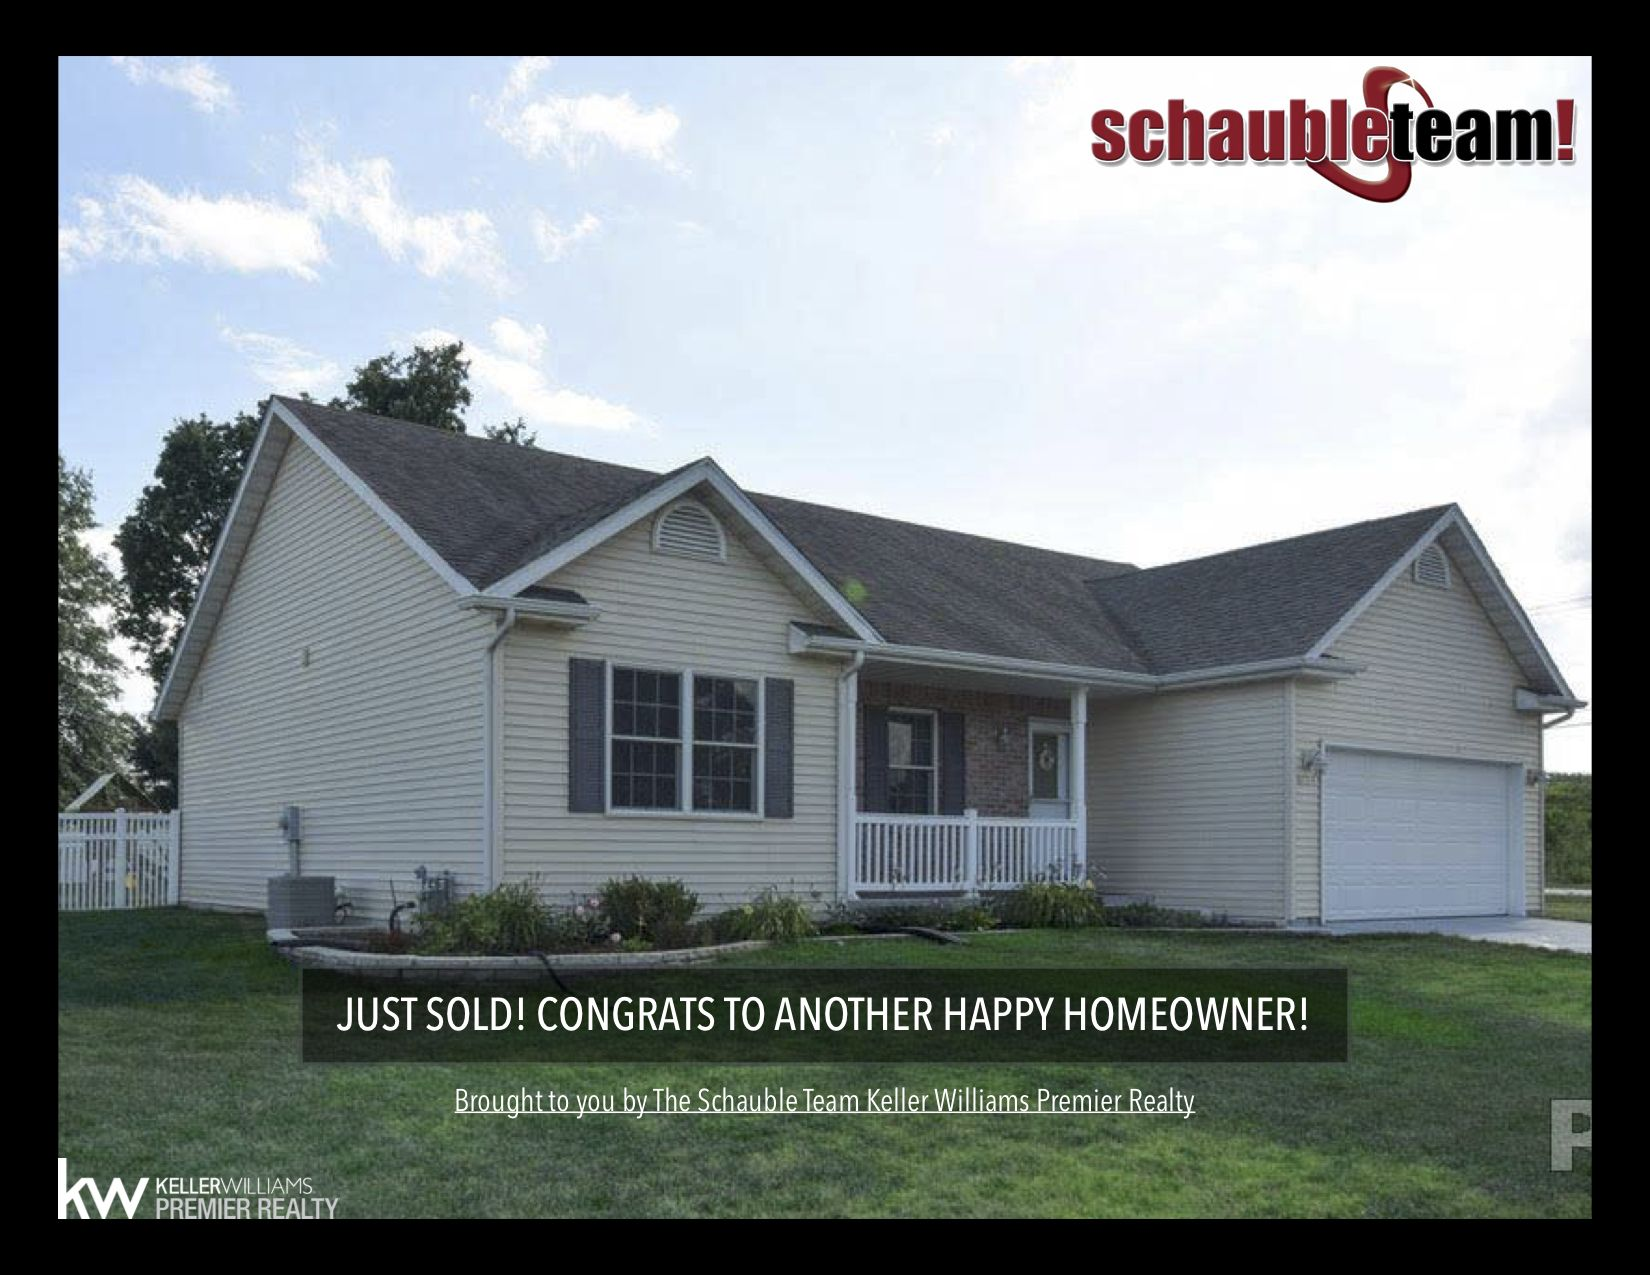 Sold Thank You For Allowing The Schauble Team Assist You With All